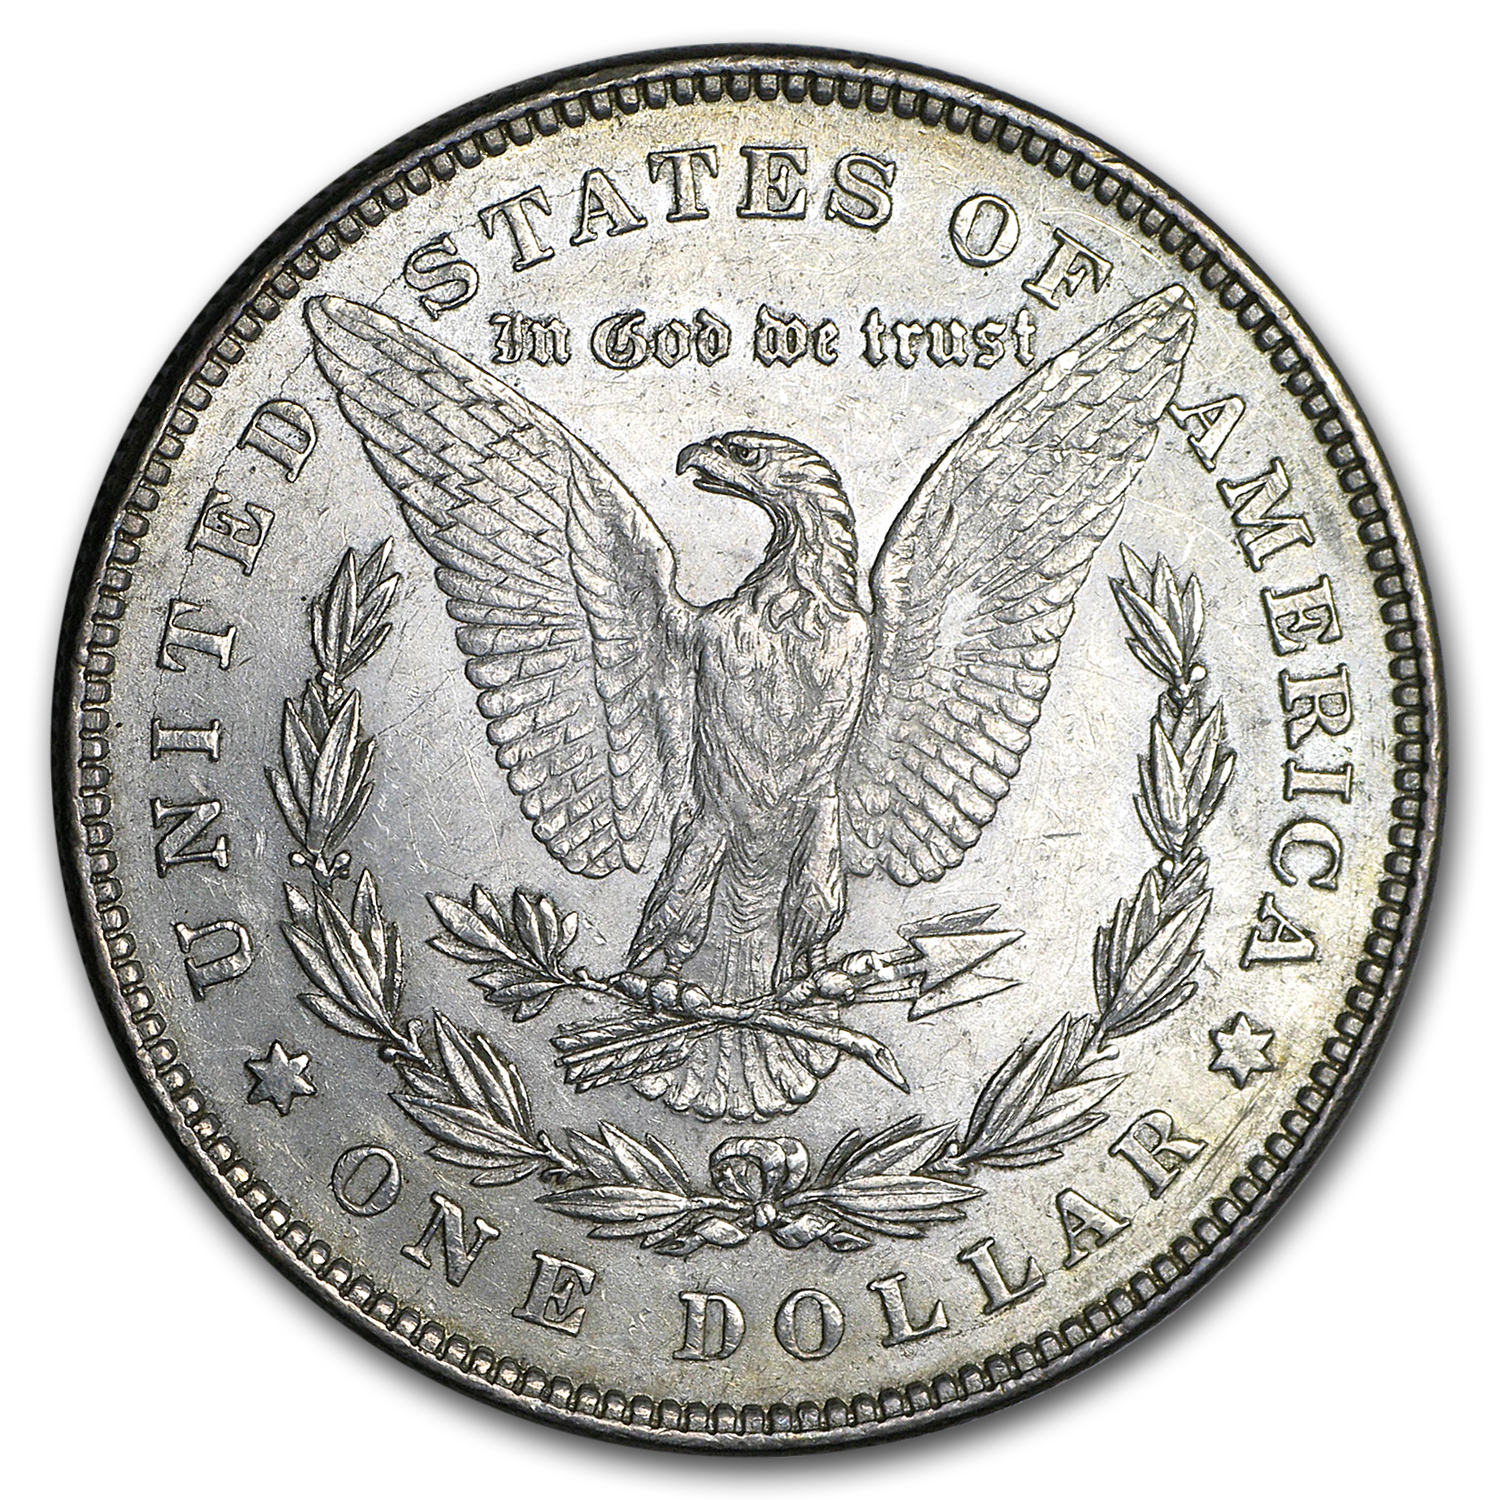 1878 Morgan Dollar - 7/8 Tailfeather Strong - Almost Uncirculated